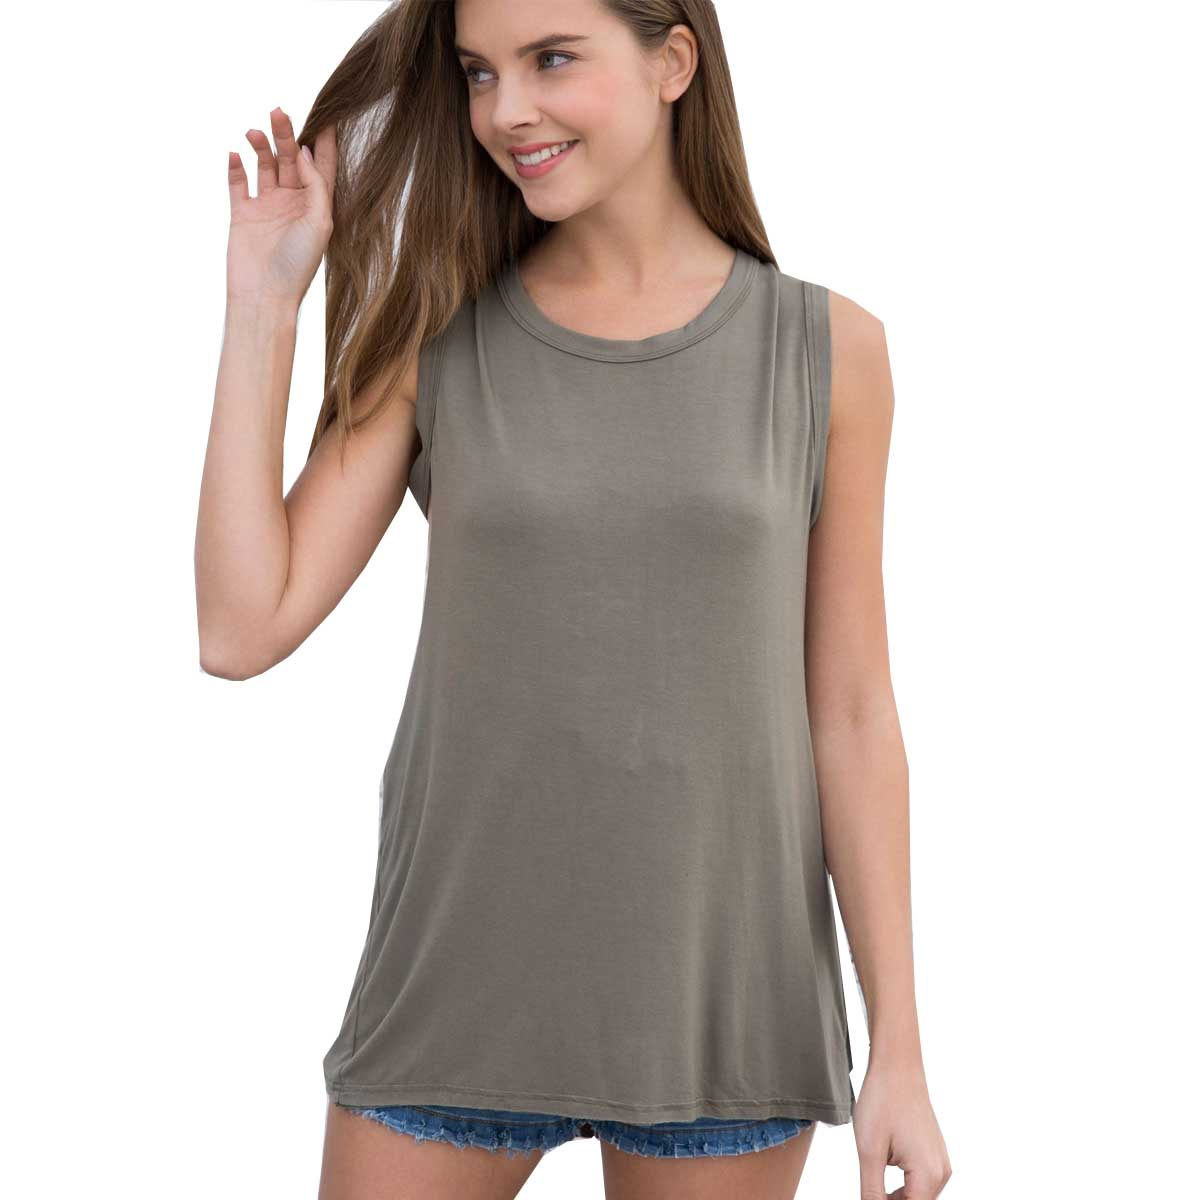 Pol Clothing Women's Tank Top - Olive